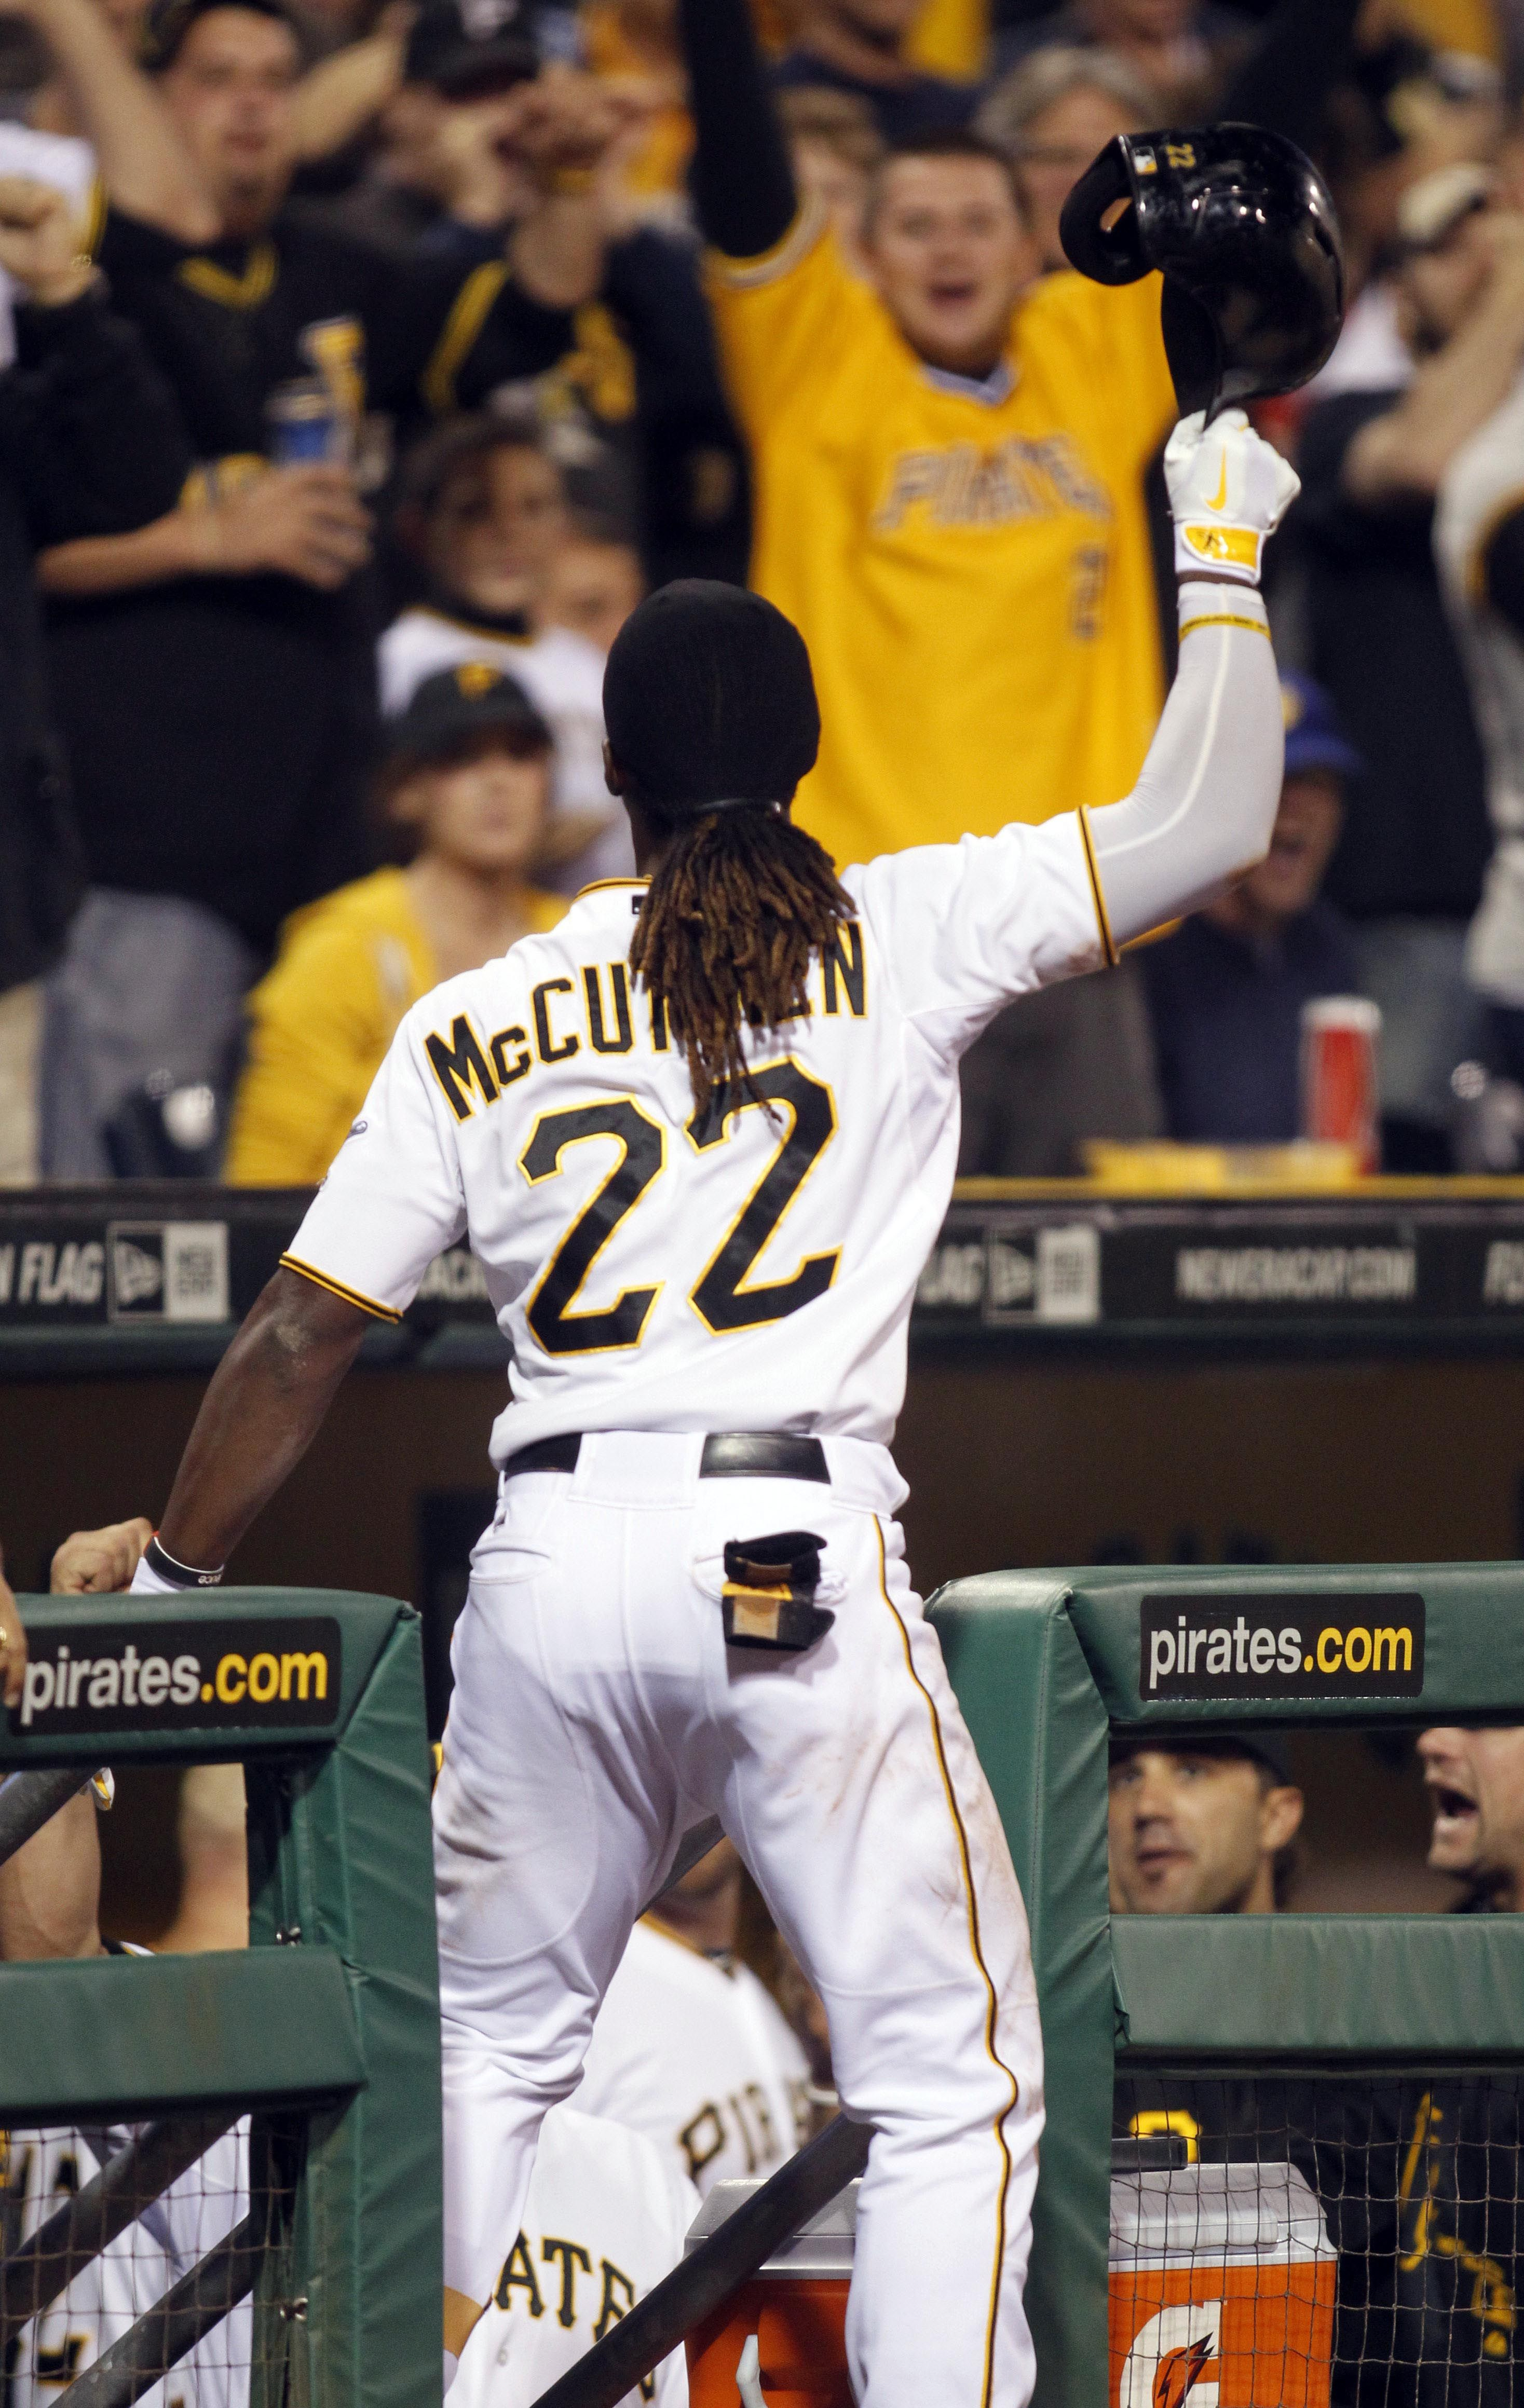 CrowdCam Hot Shot: Pittsburgh Pirates Center Fielder Andrew McCutchen Takes  A Curtain Call After Hitting